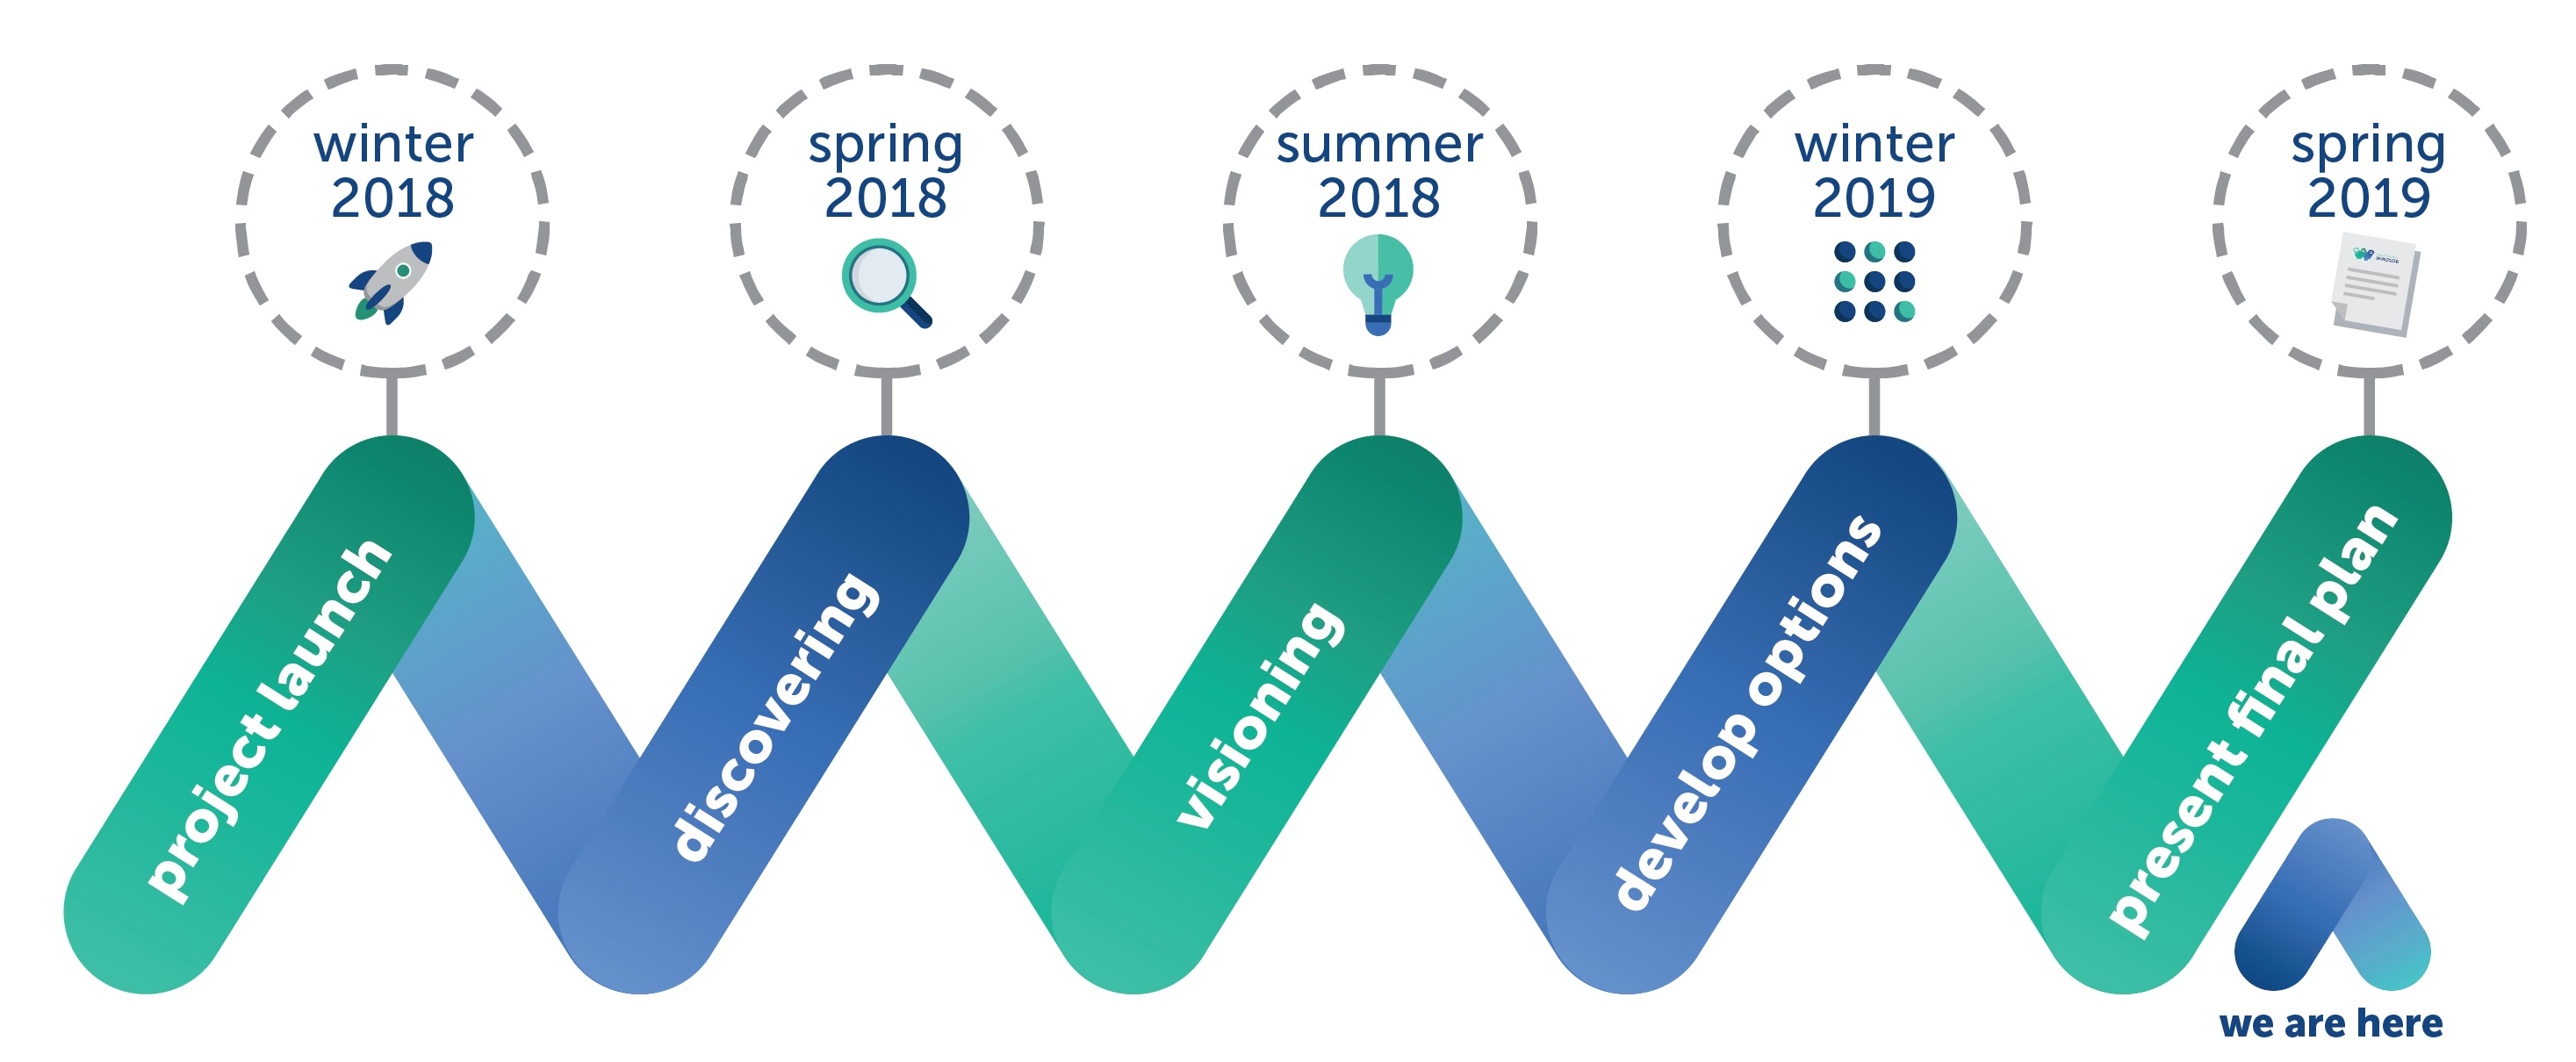 Current stage of project timeline: spring 2019, present final plan